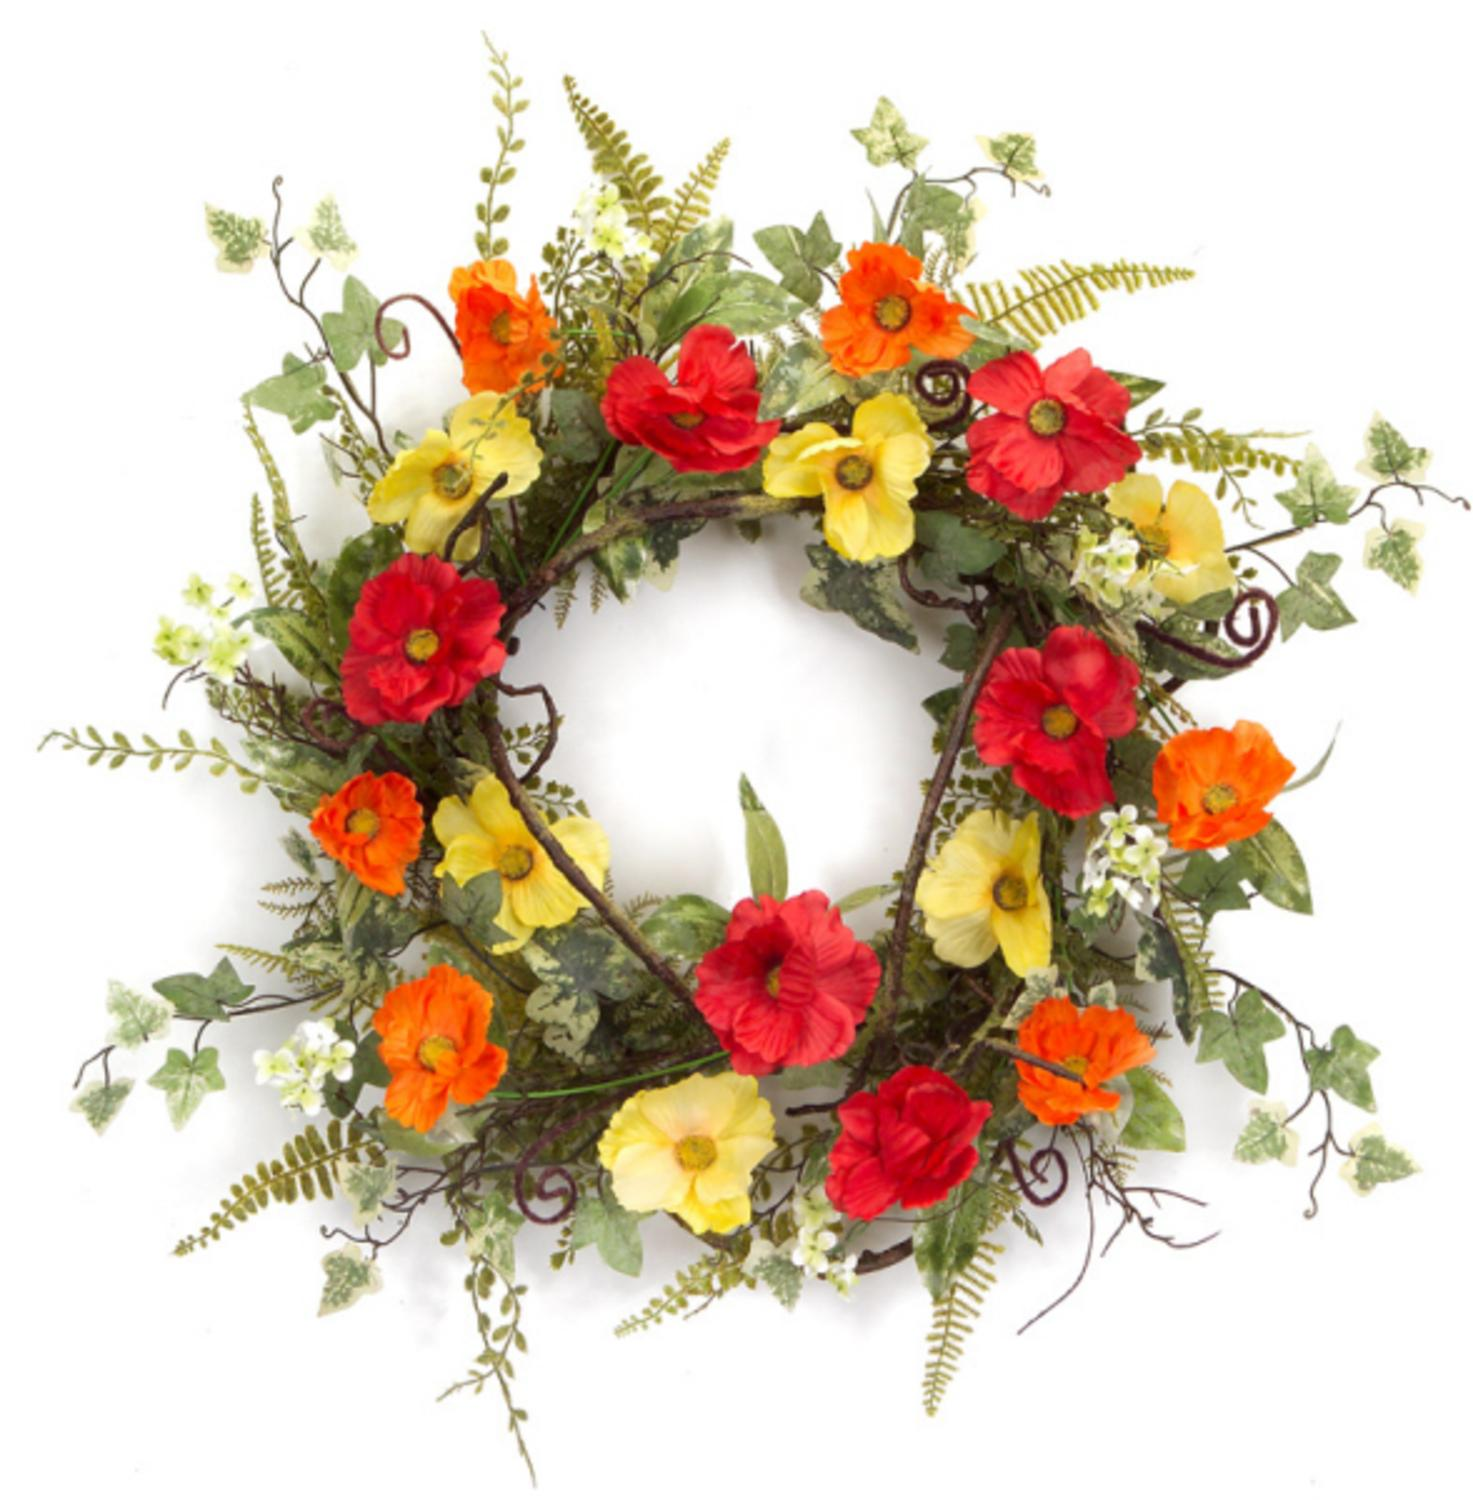 Pack of 2 Red, Orange and Yellow Poppy Flowers with Mixed Foliage Decorative Artificial Wreaths 24""